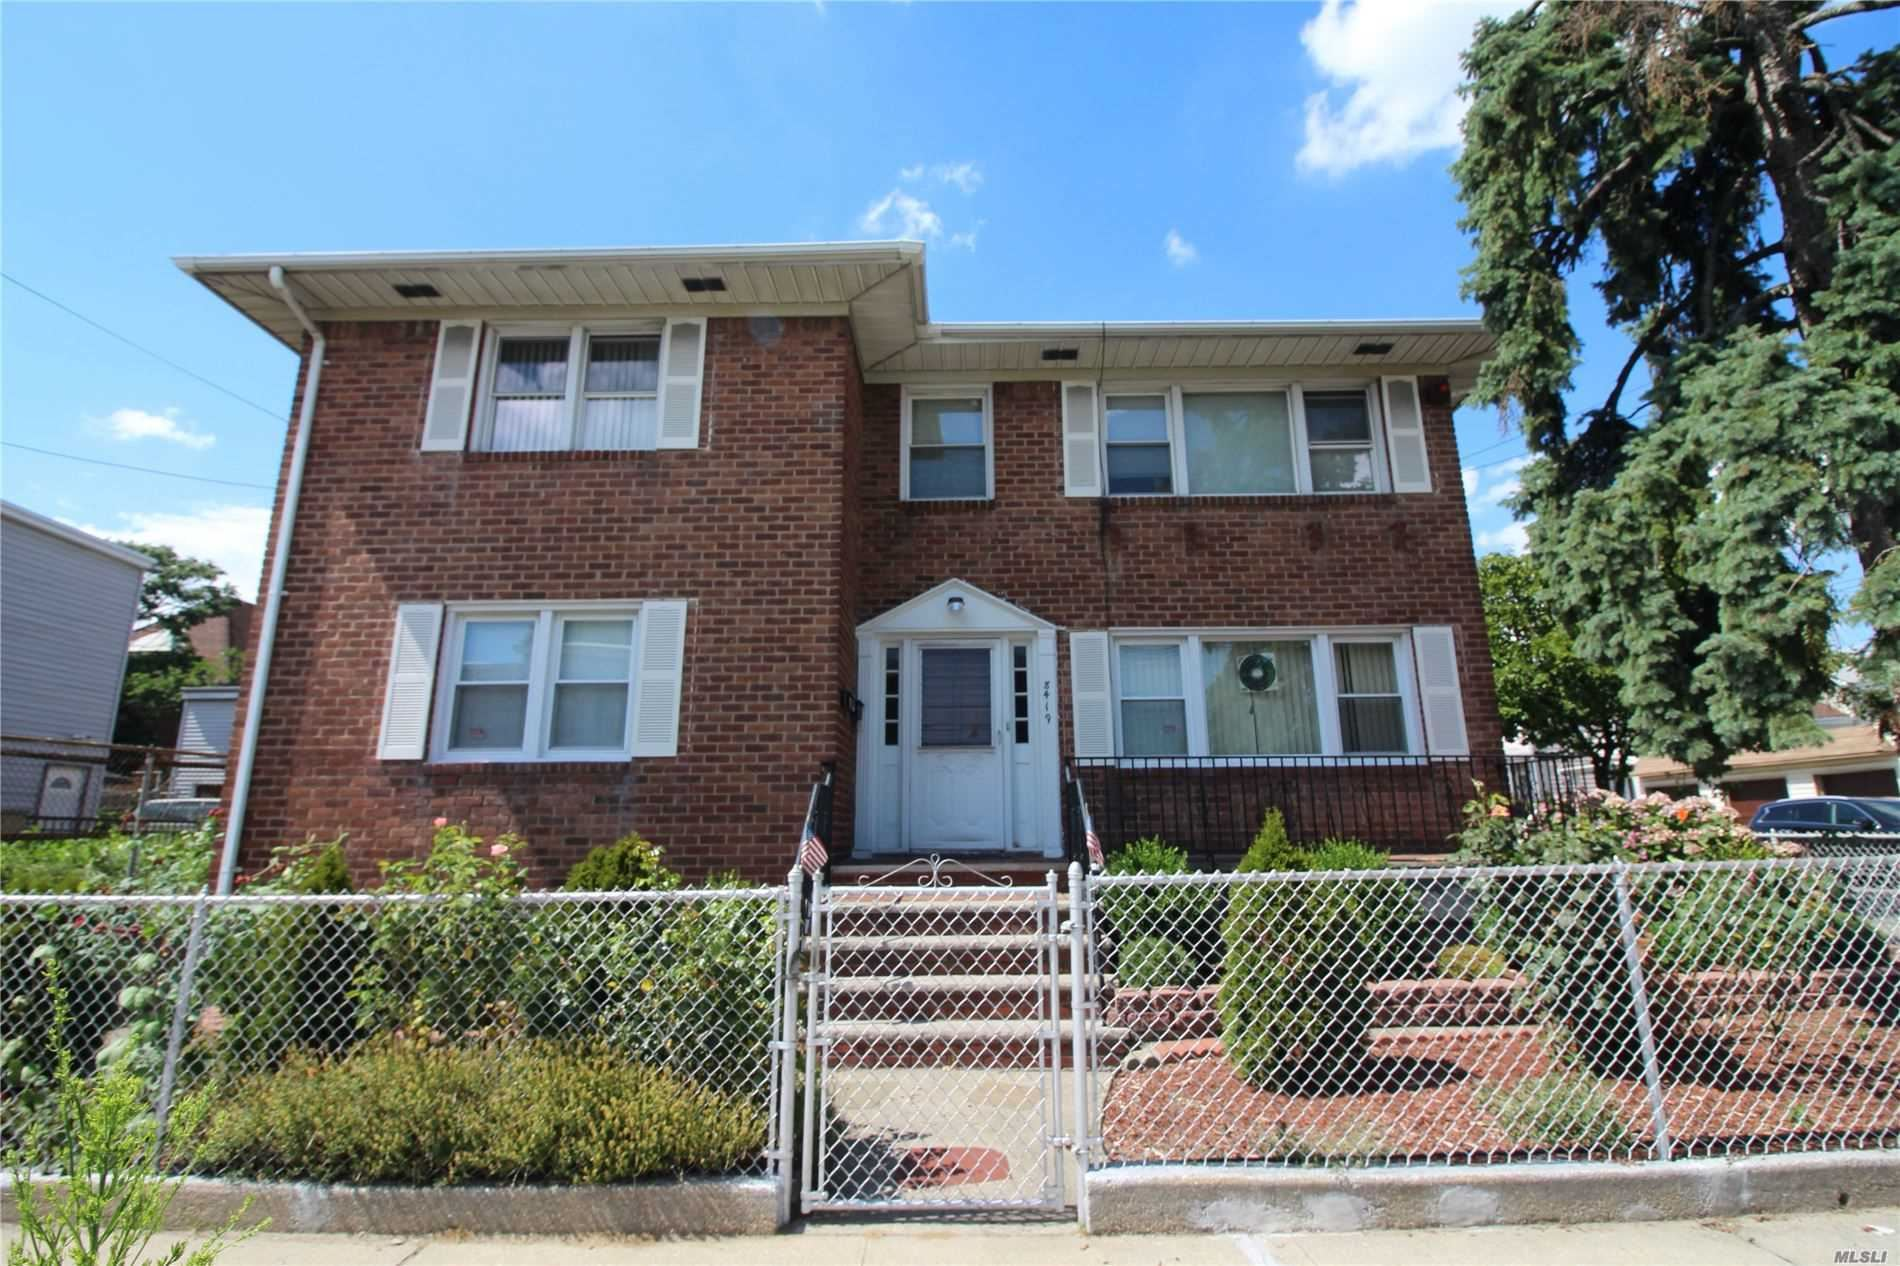 84-19 95th Avenue, Ozone Park, NY 11416 - MLS#: 3237549